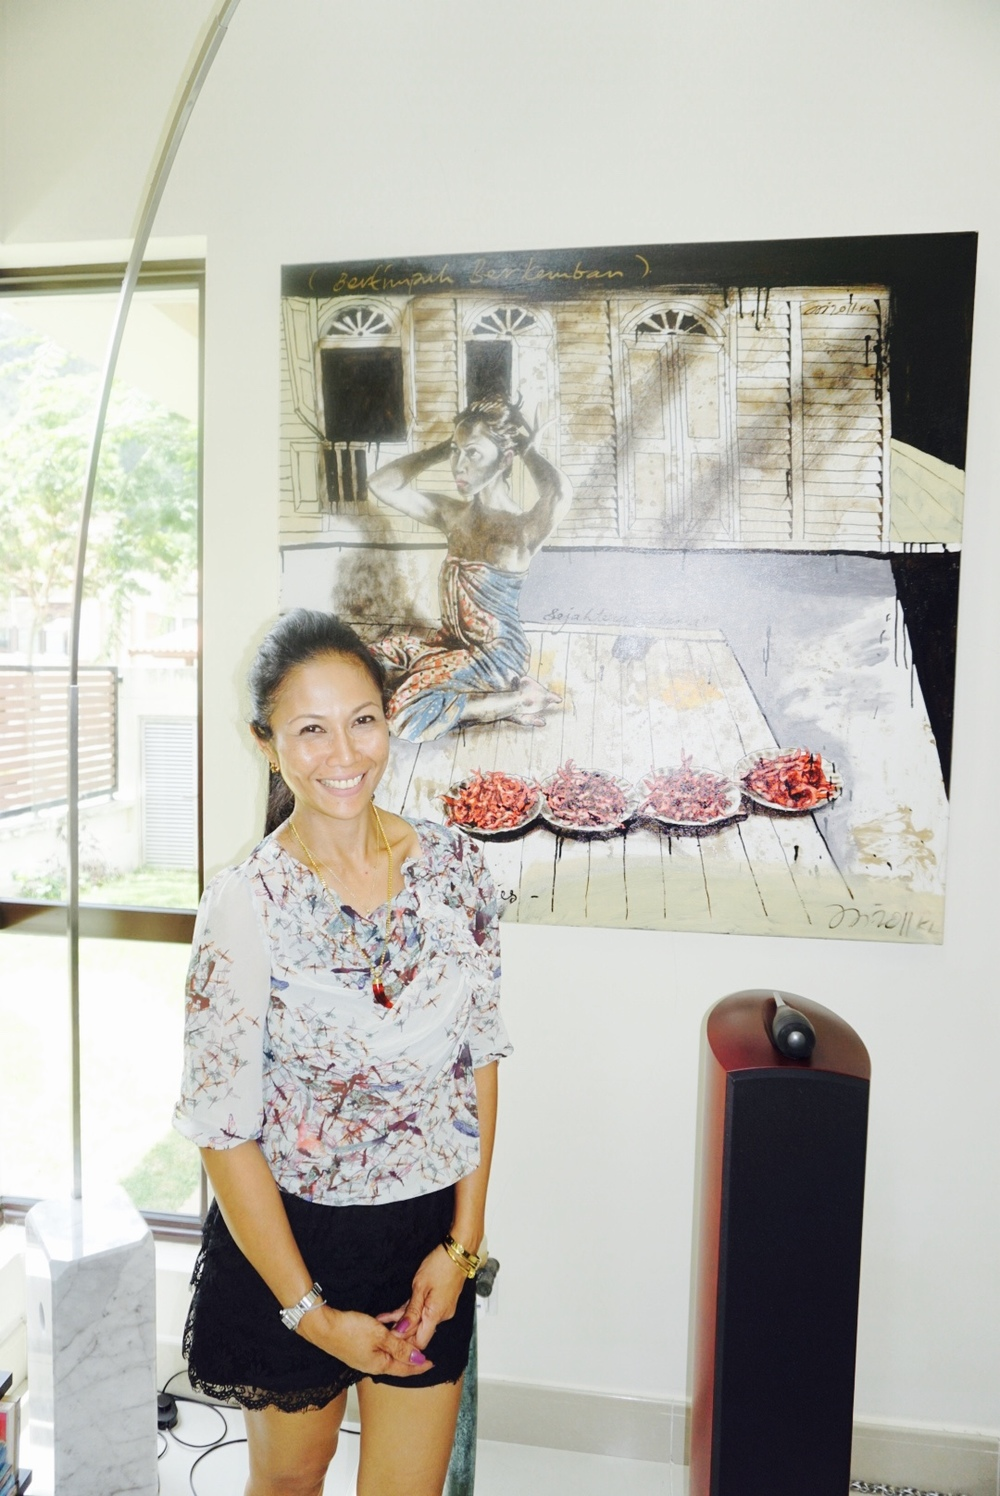 Adilah posing in front of her portrait completed in 2011 way before the launch of Dapur Sainer.